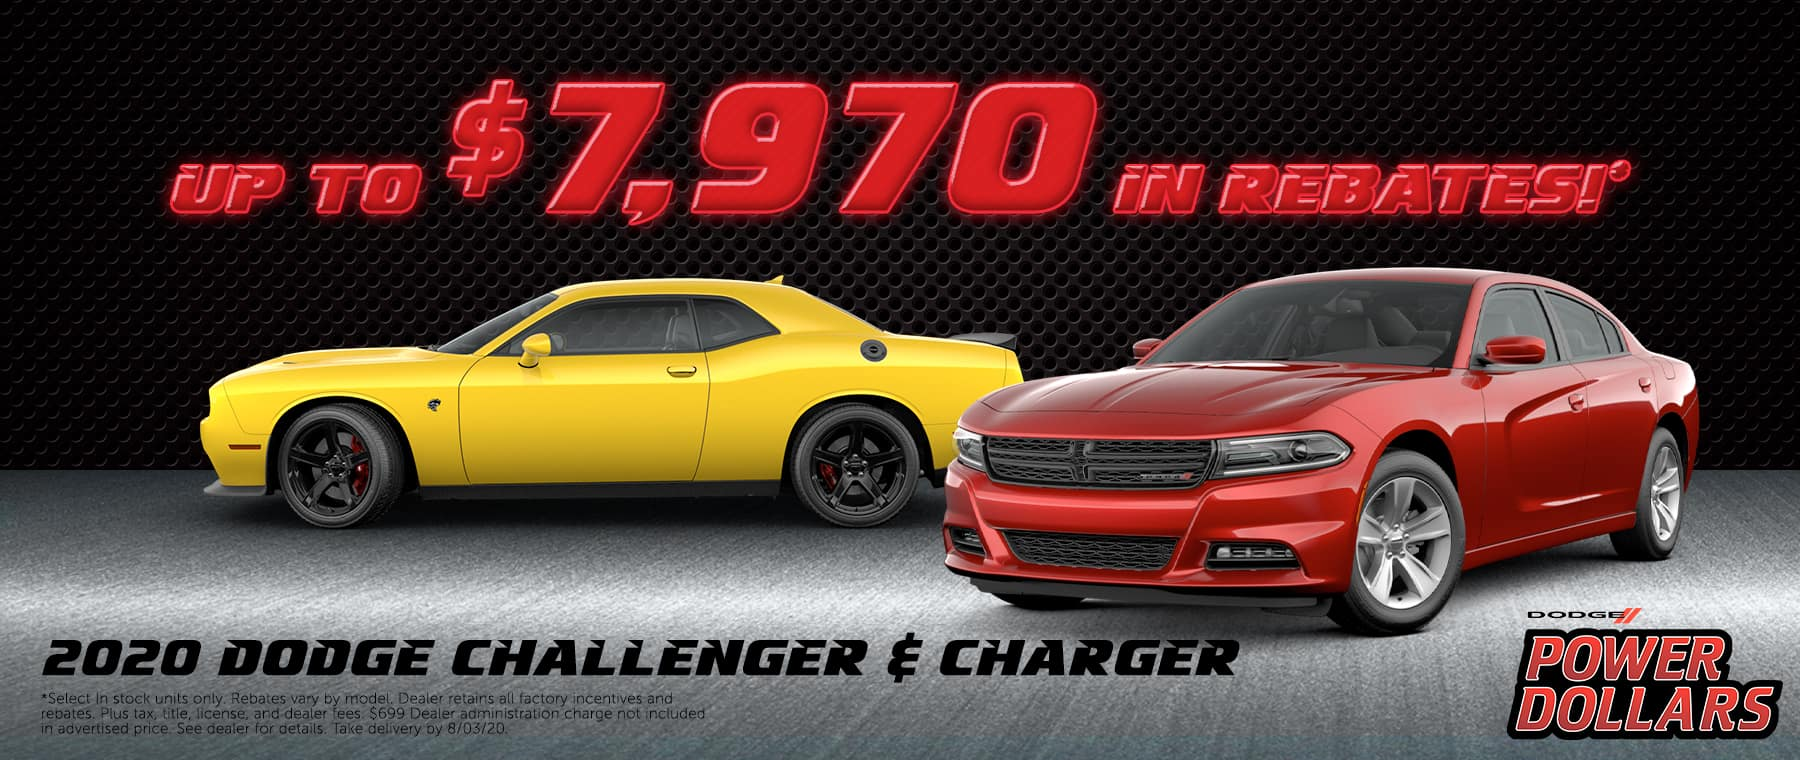 2020 Challenger/Charger up to $7,970 off MSRP